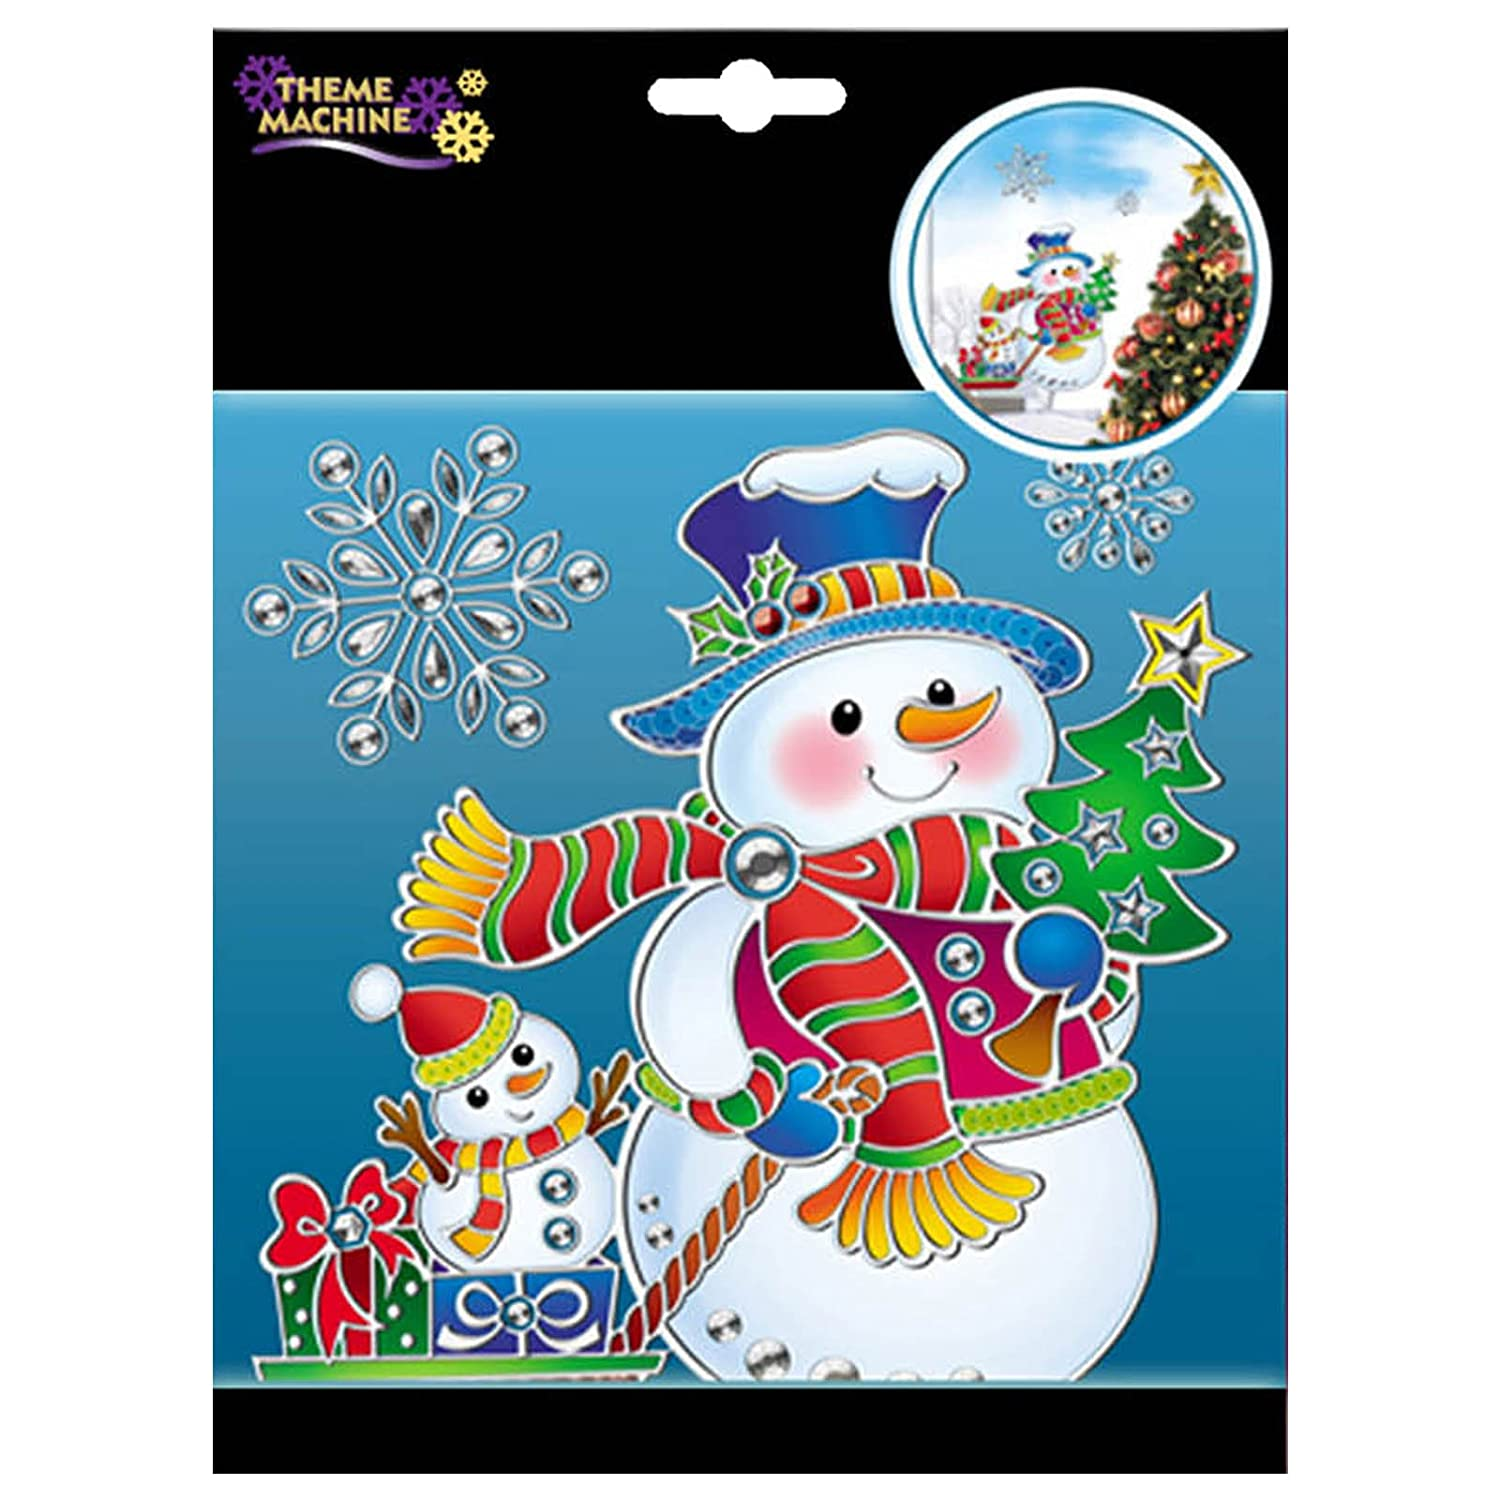 Cute Christmas Party SNOWMAN Suncatcher Plastic Window Clings Decorations Davies Products